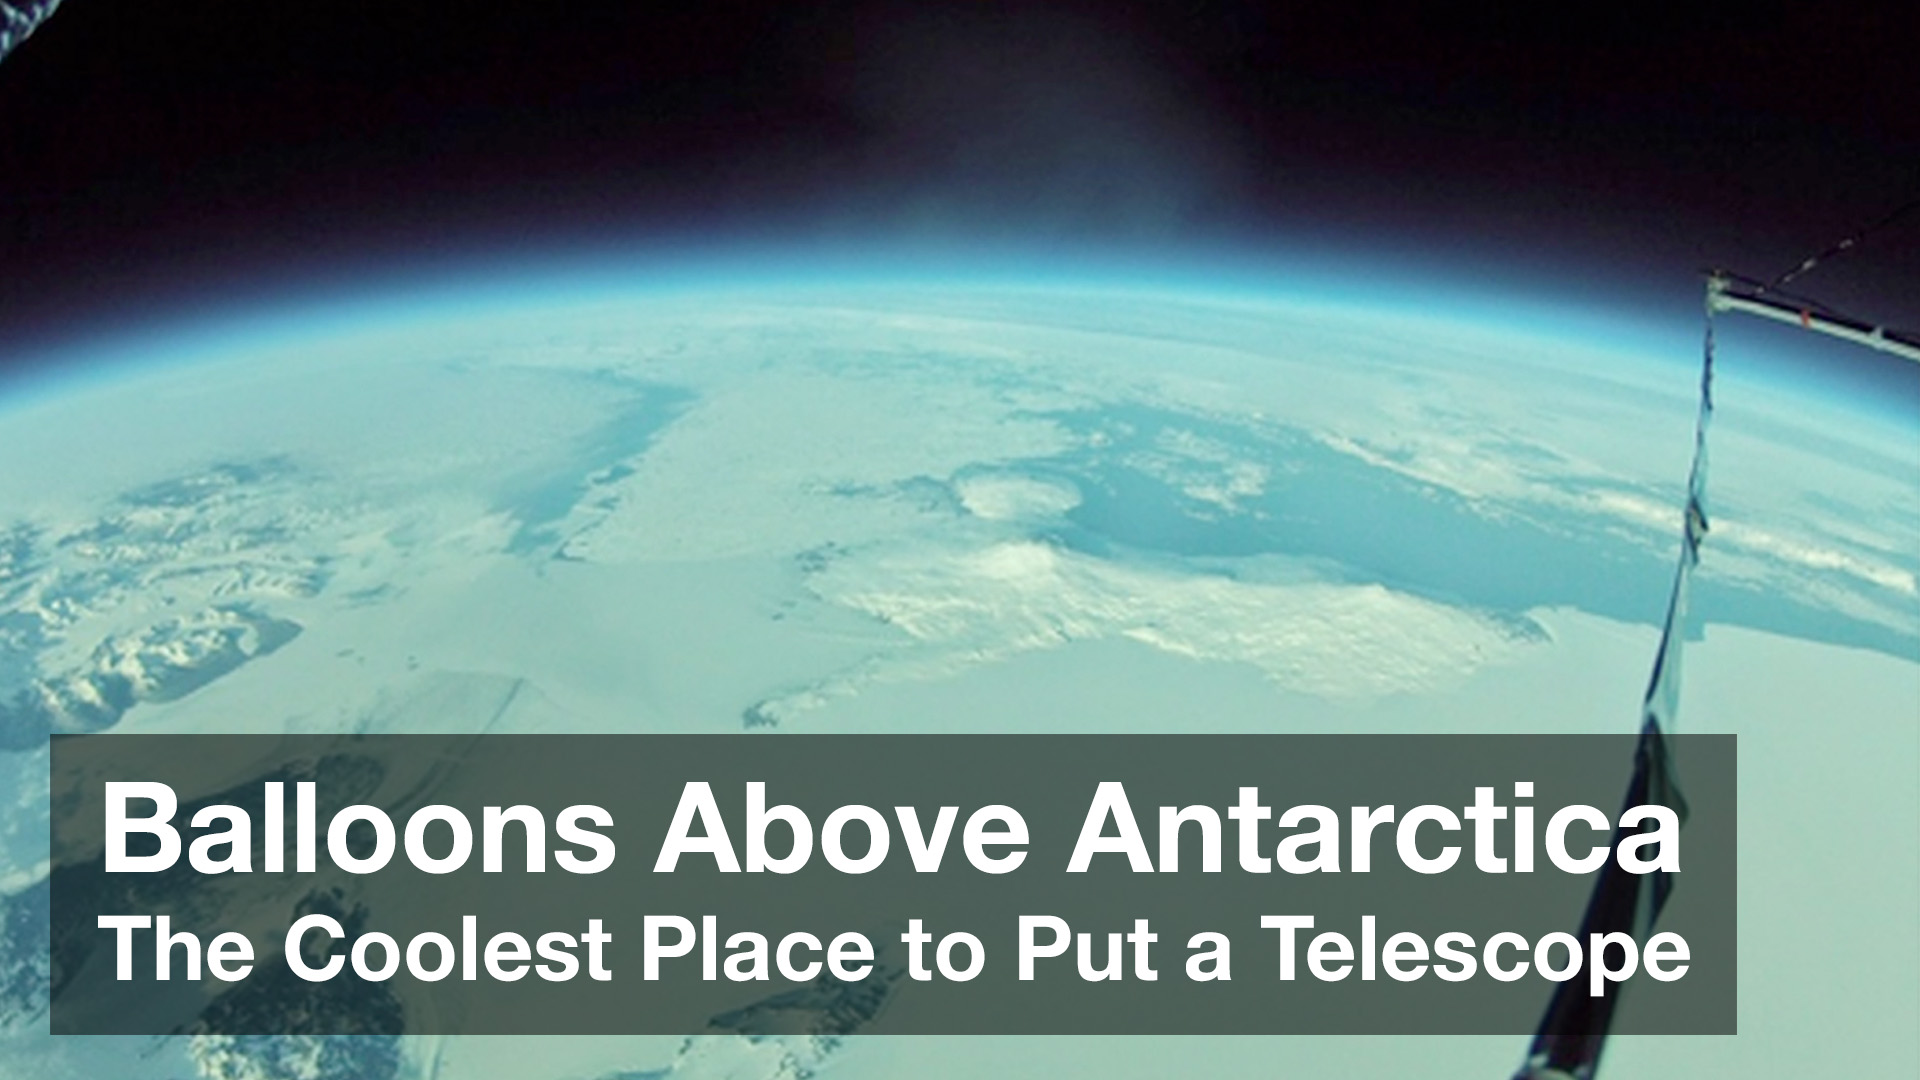 Balloons Above Antarctica: The Coolest Place to Put a Telescope